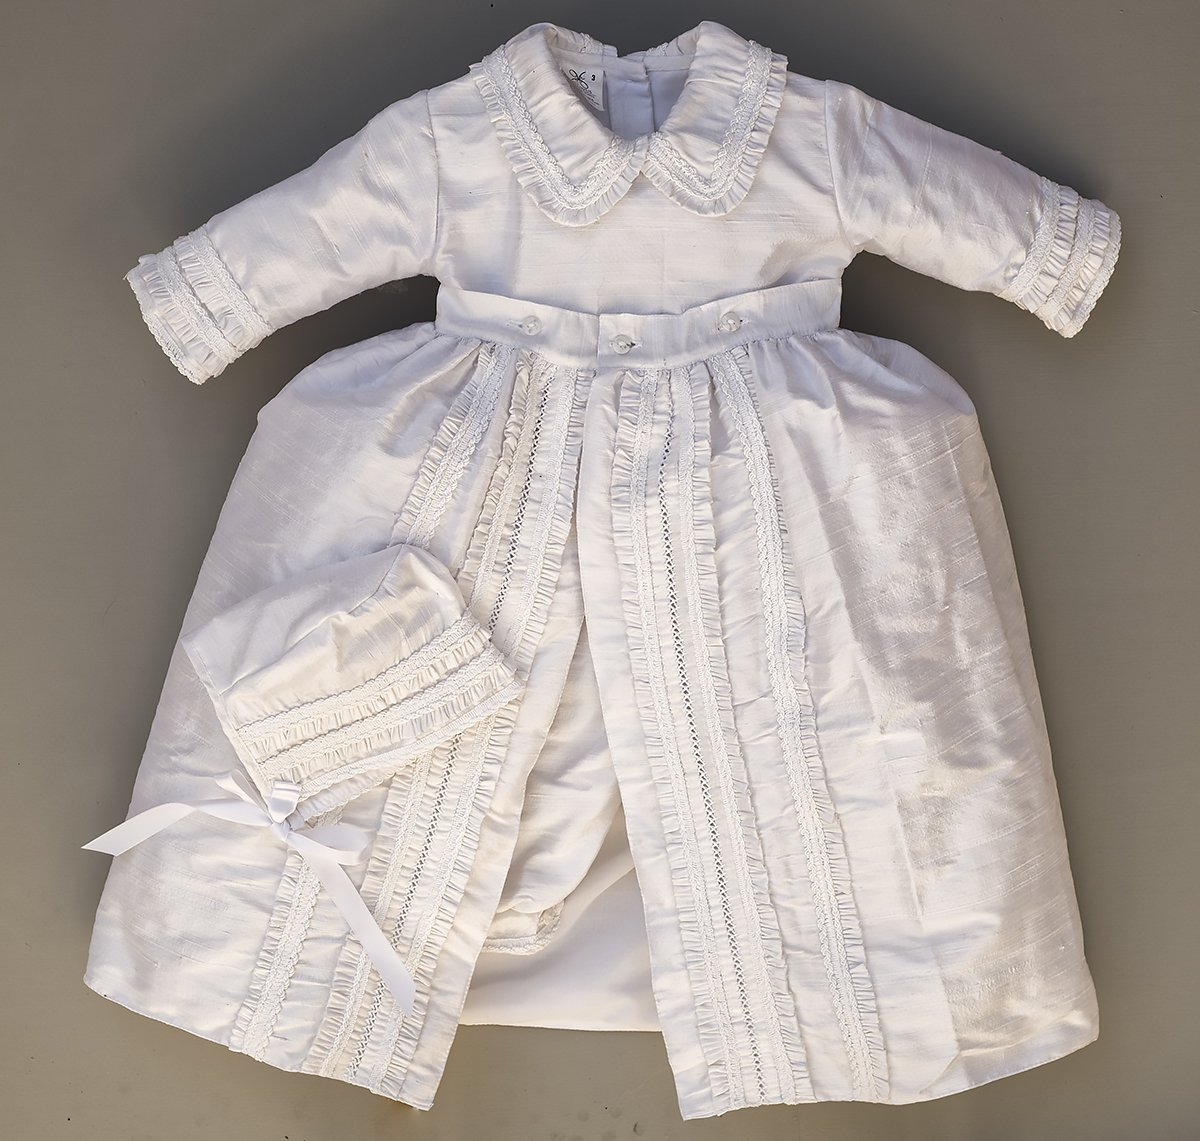 Heirloom Baby Boy's Christening Baptism Gown, Hand Made White Burbvus Ropones by Burbvus (Image #4)